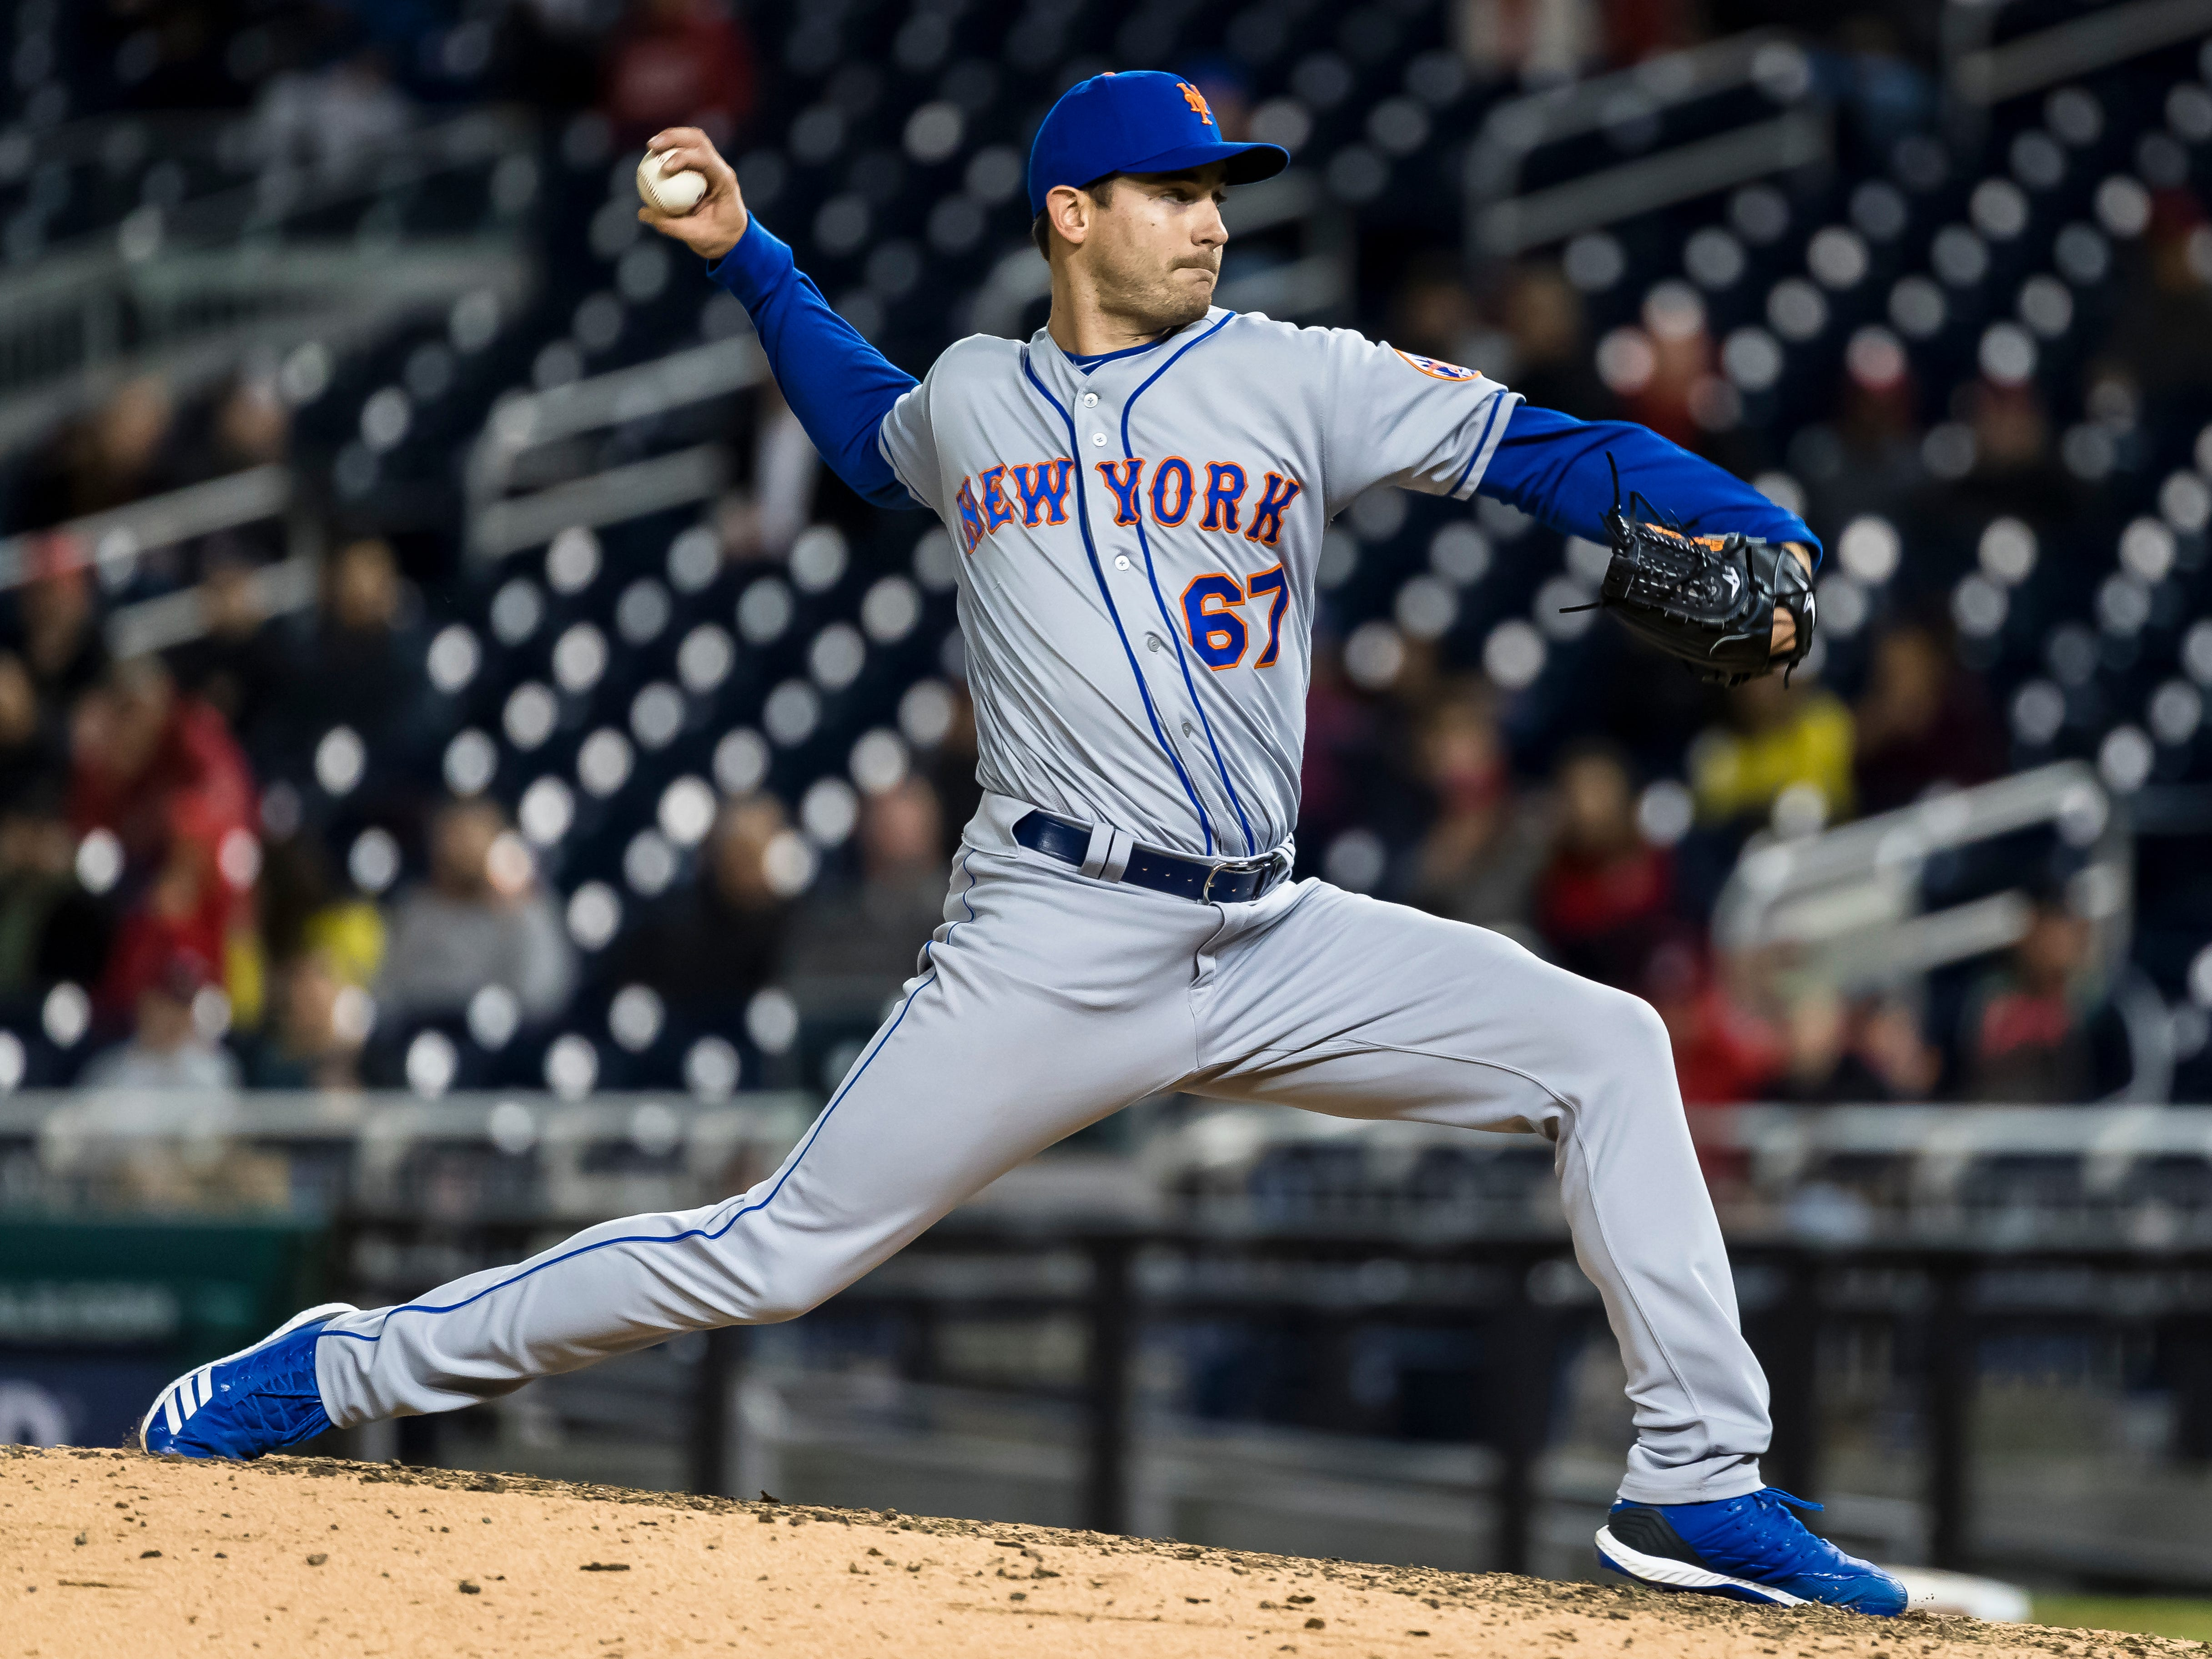 Seth Lugo of the New York Mets pitches against the Washington Nationals during the ninth inning at Nationals Park on May 14, 2019 in Washington, DC.